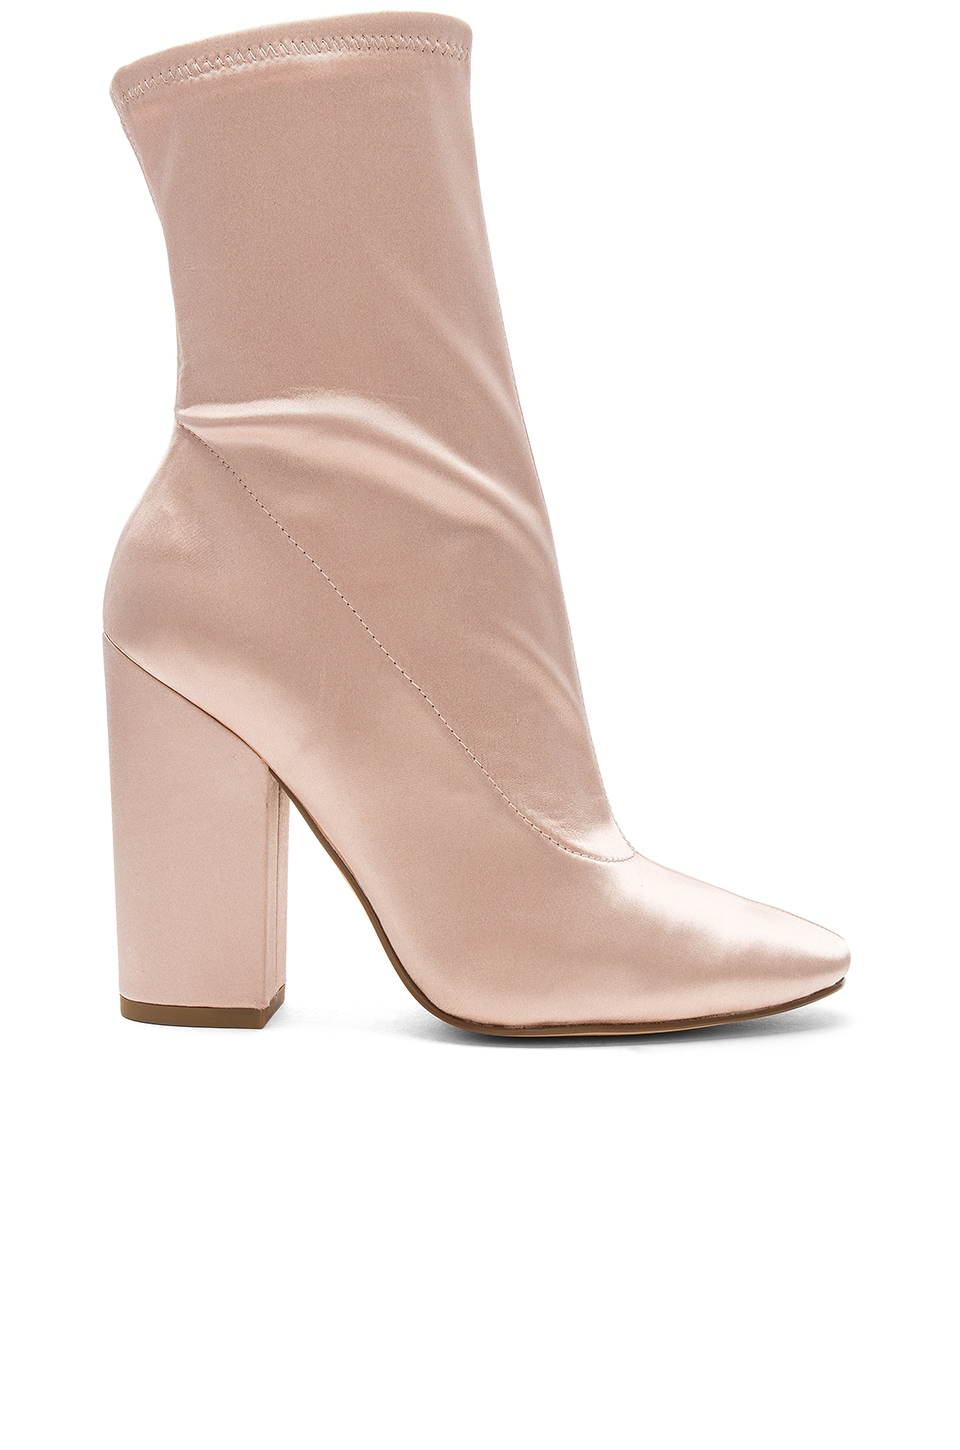 KENDALL + KYLIE Hailey Bootie in Blush Satin